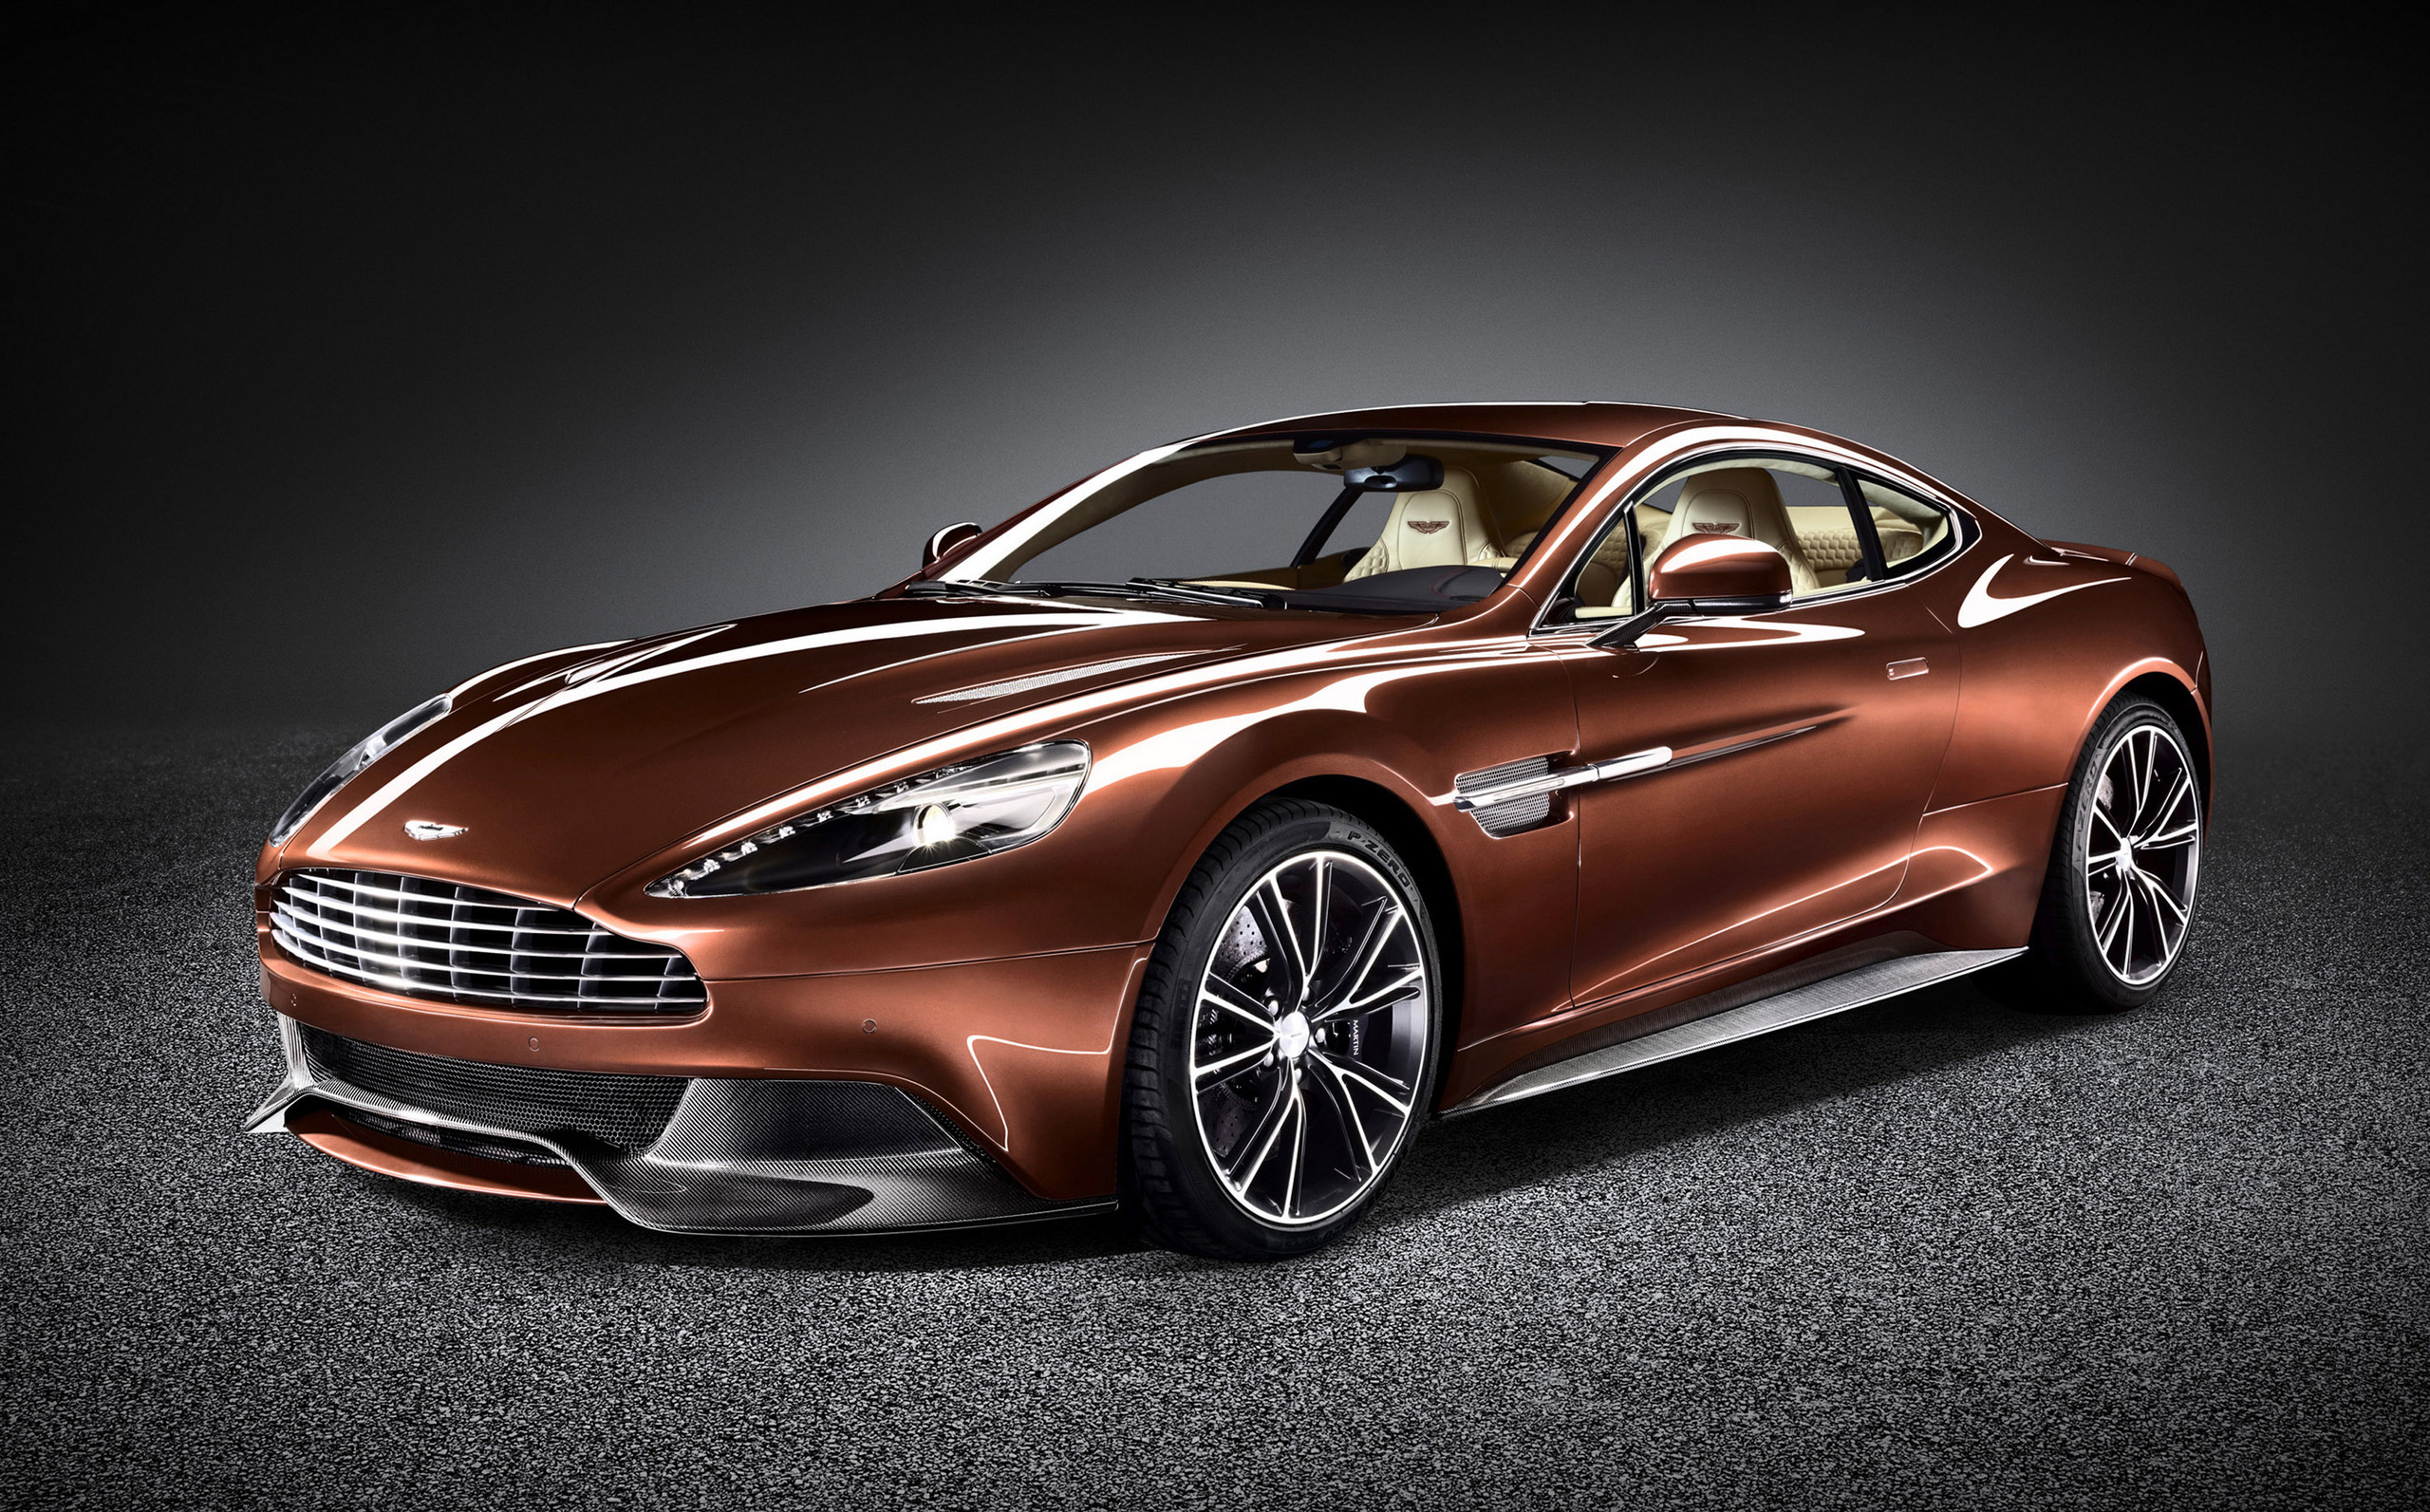 Auto Sportive Immagini ASTON MARTIN VANQUISH HD Wallpaper And - Aston martin sports car